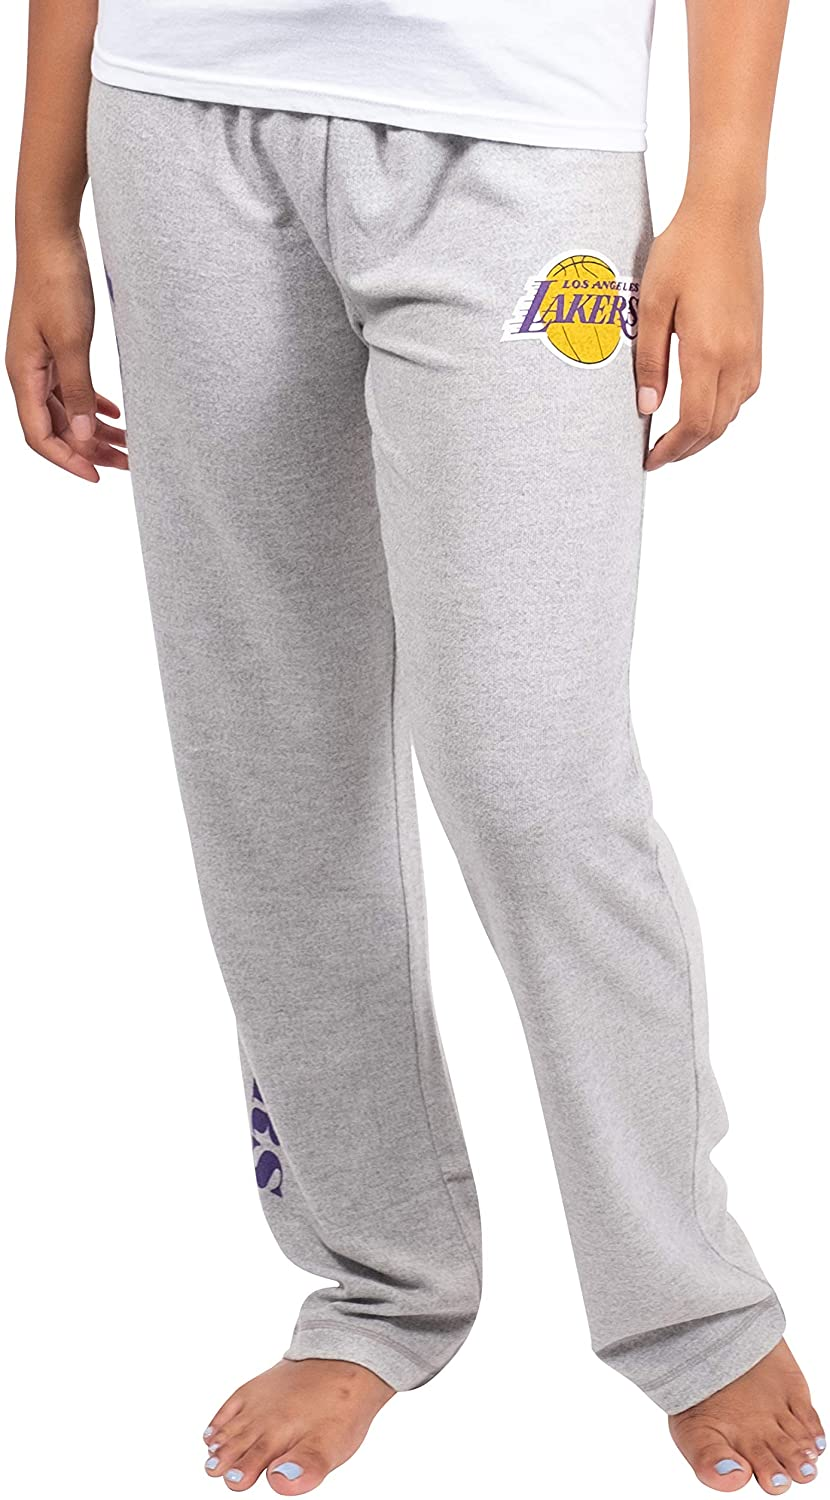 Ultra Game NBA Women's Sleepwear Super Soft Hacci Pajama Loungewear Pants